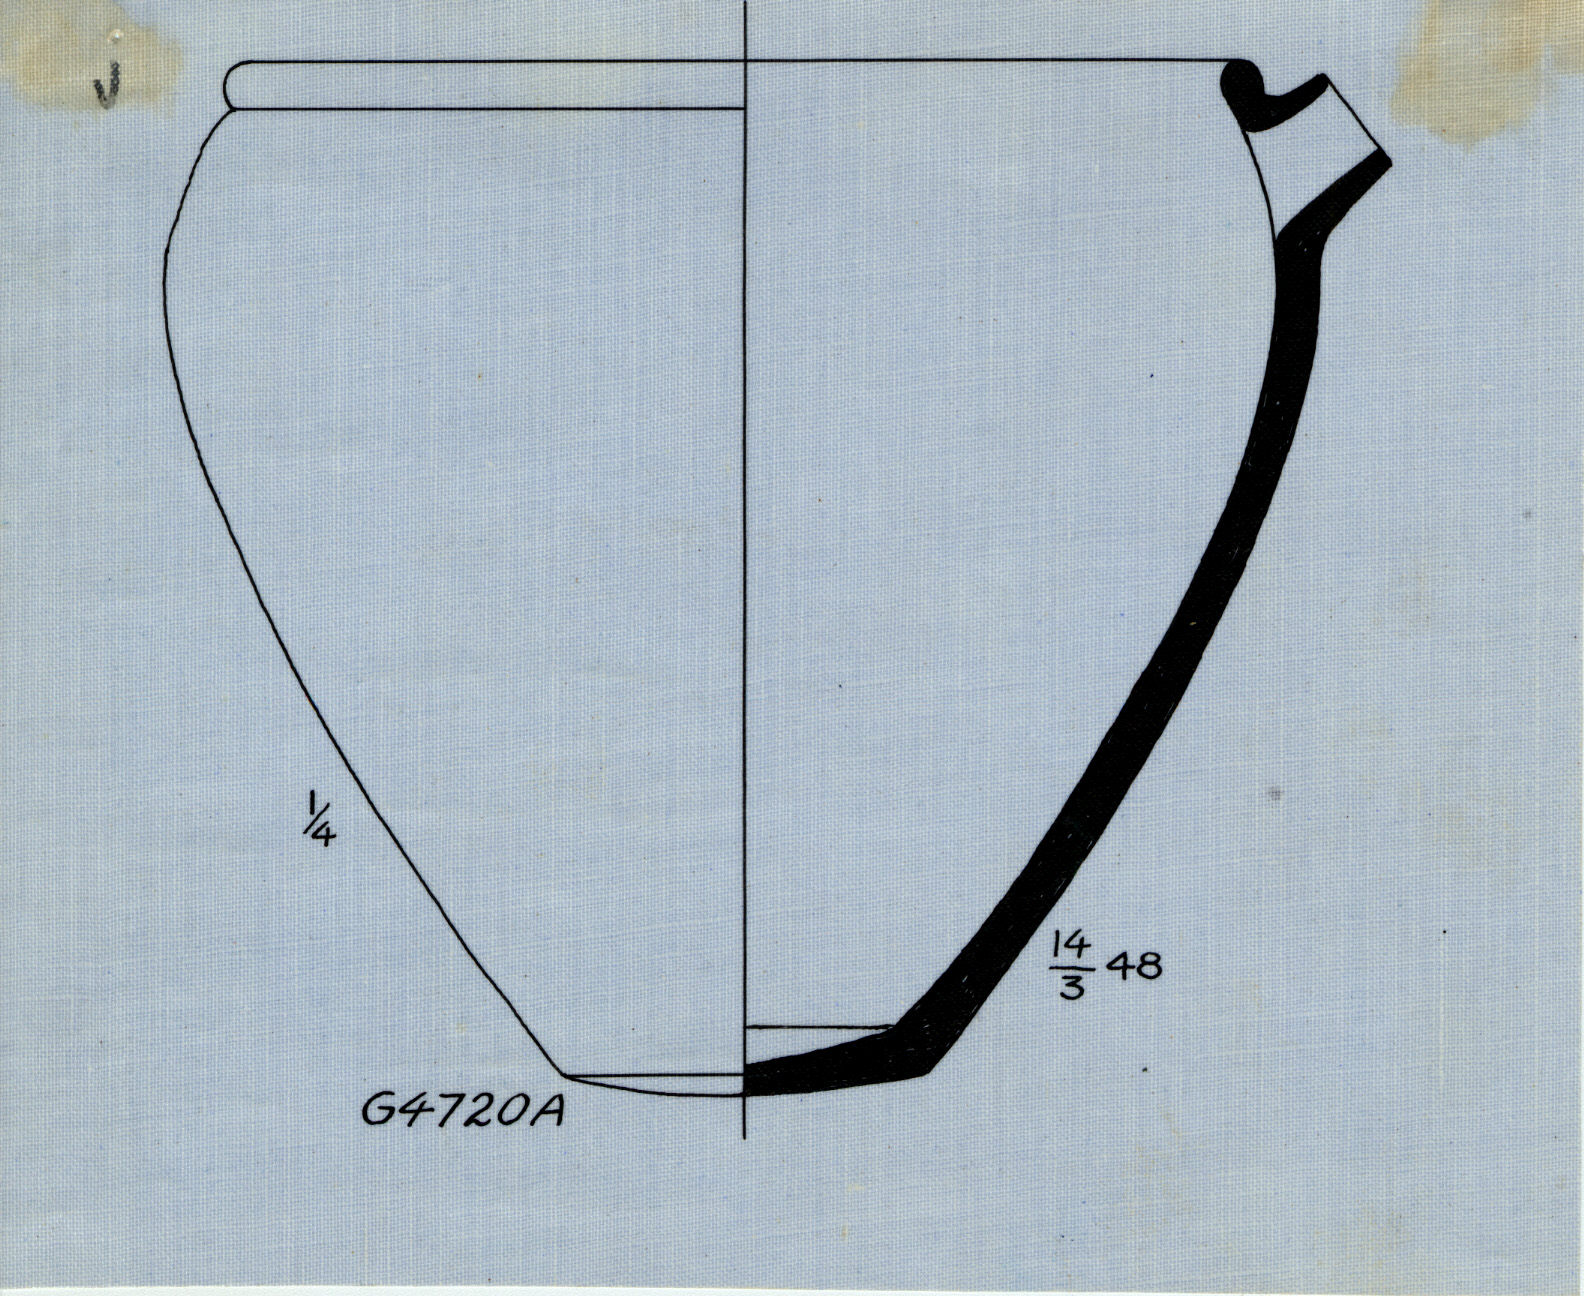 Drawings: G 4720, Shaft A: pottery, basin with spout